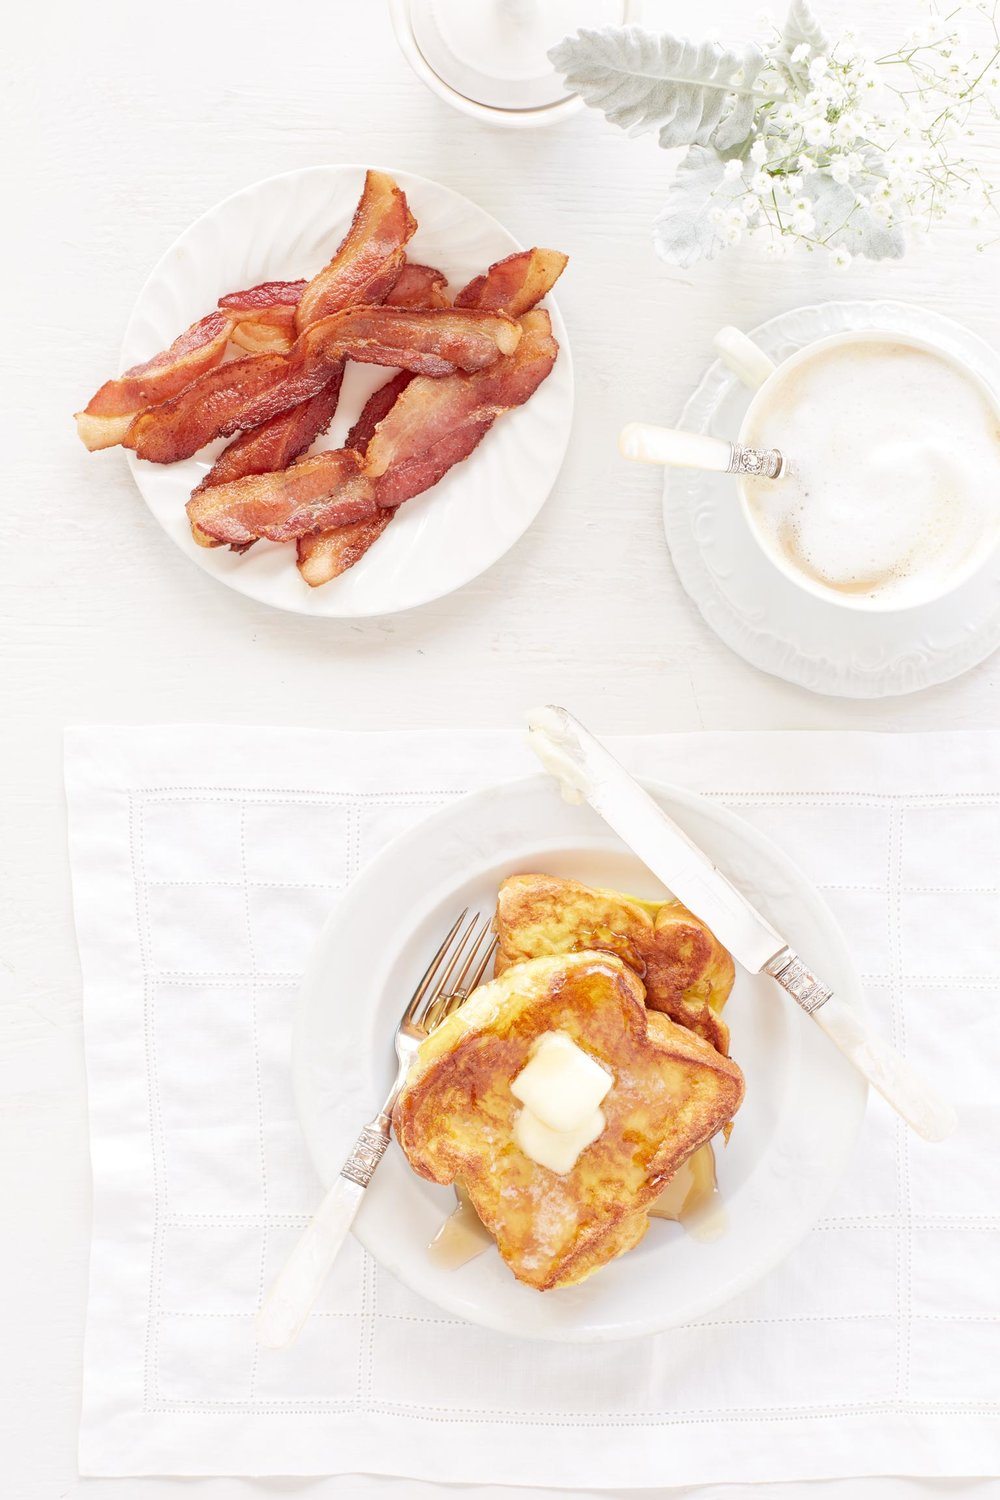 tyllie_white_bacon_french_toast.jpg